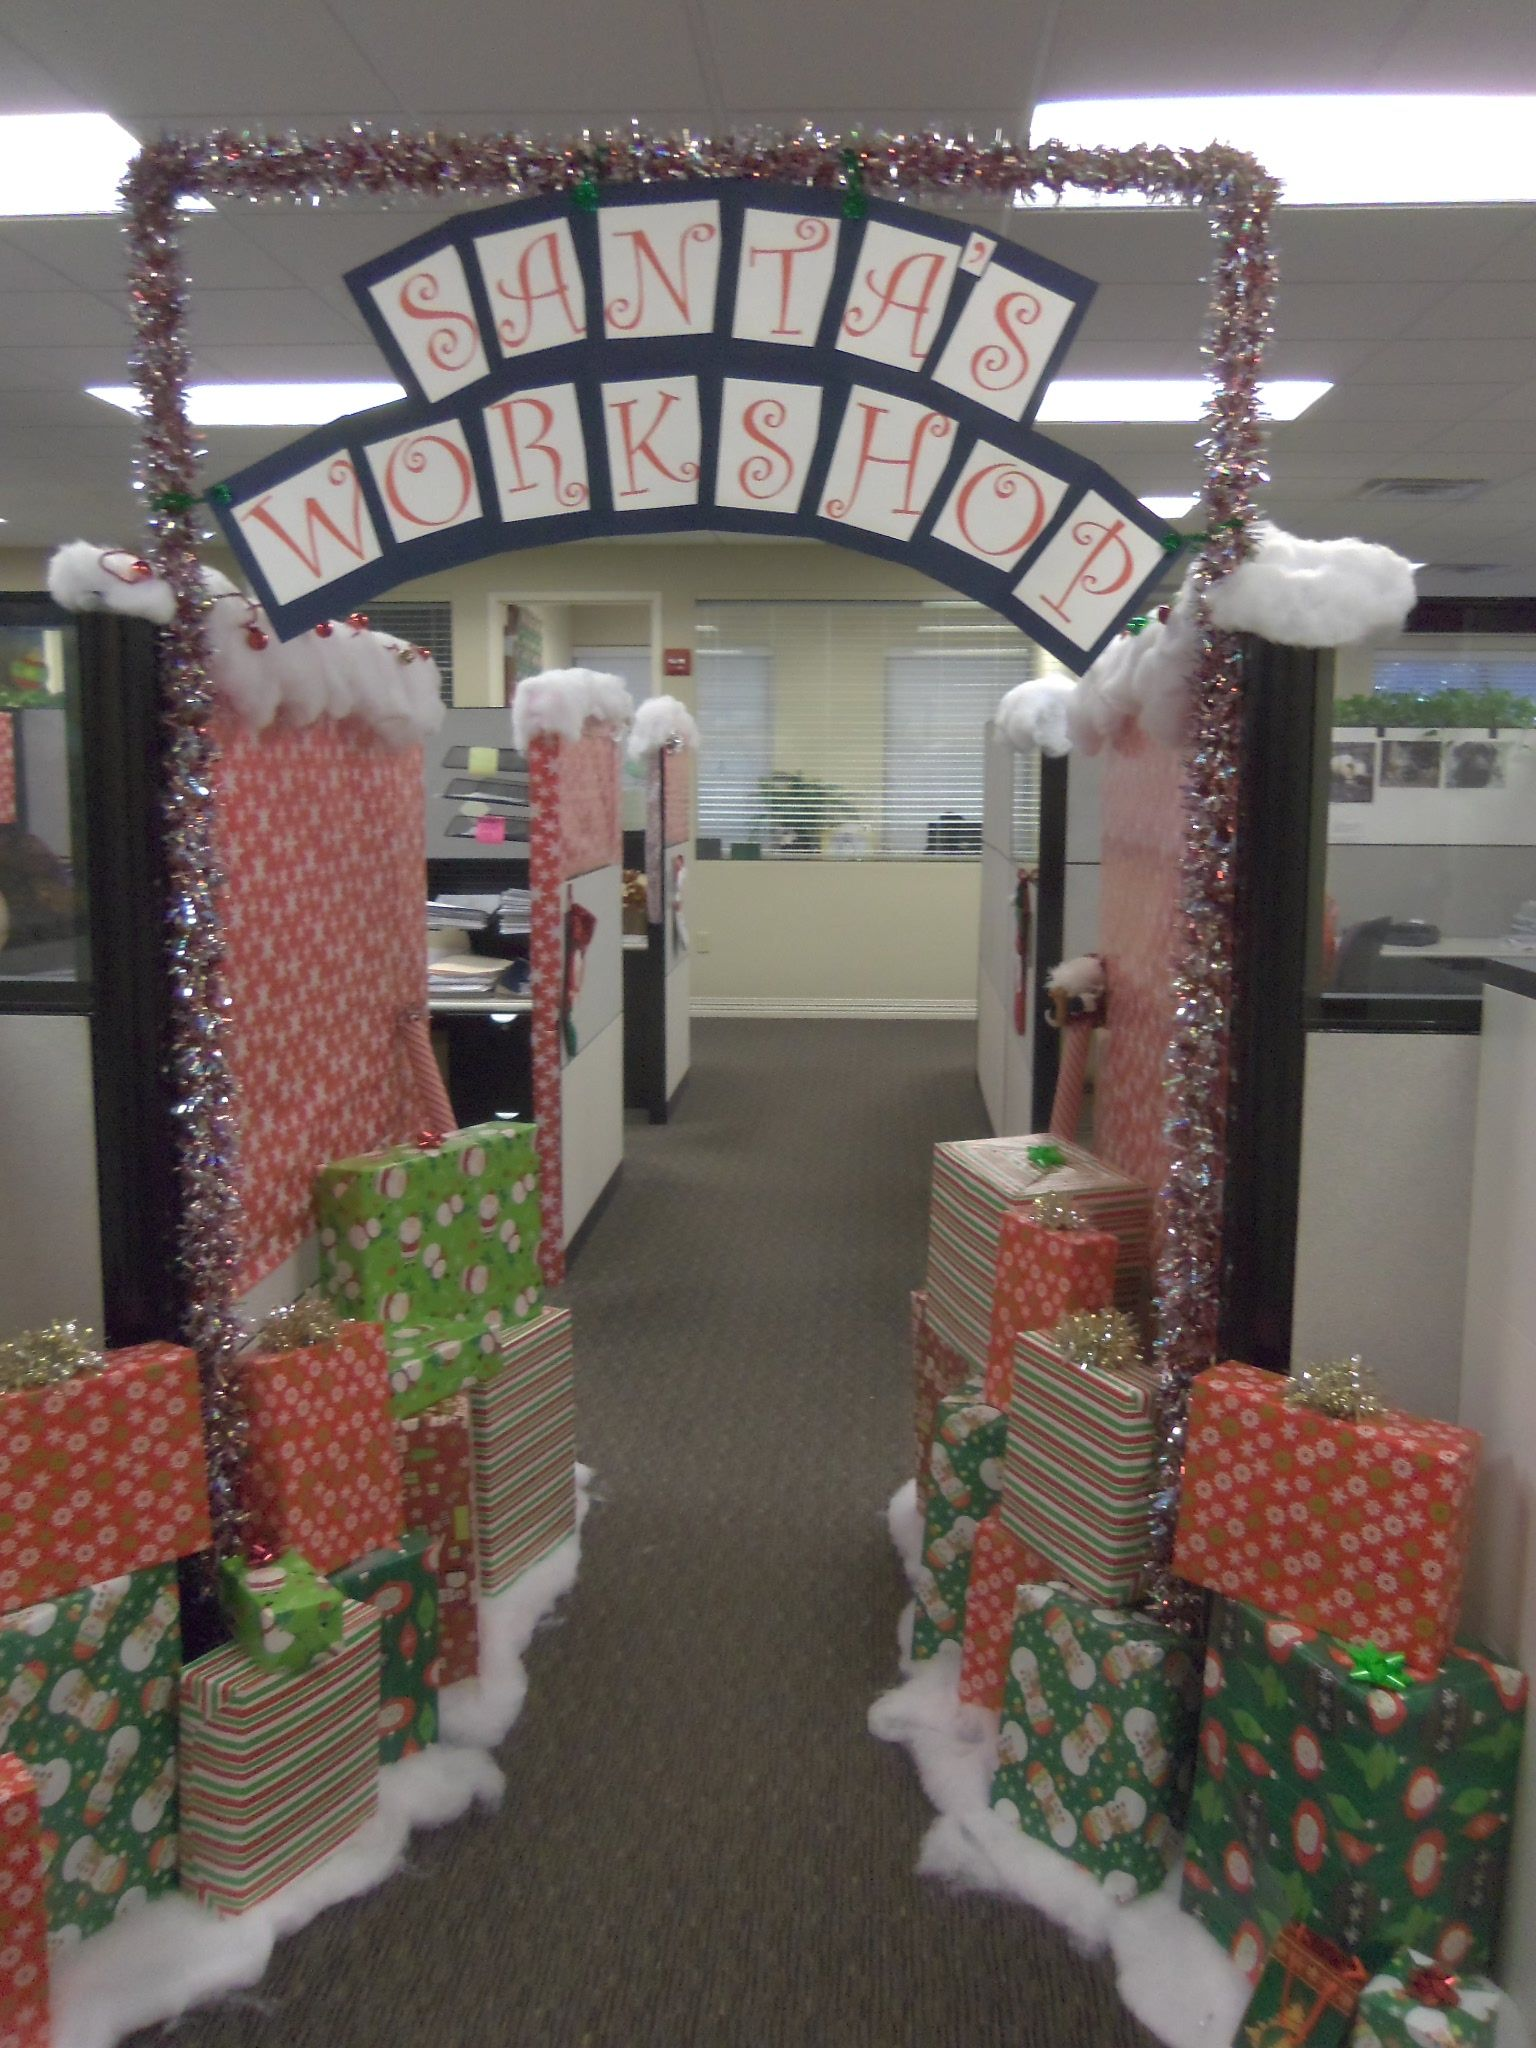 Christmas decorations can boost morale at the